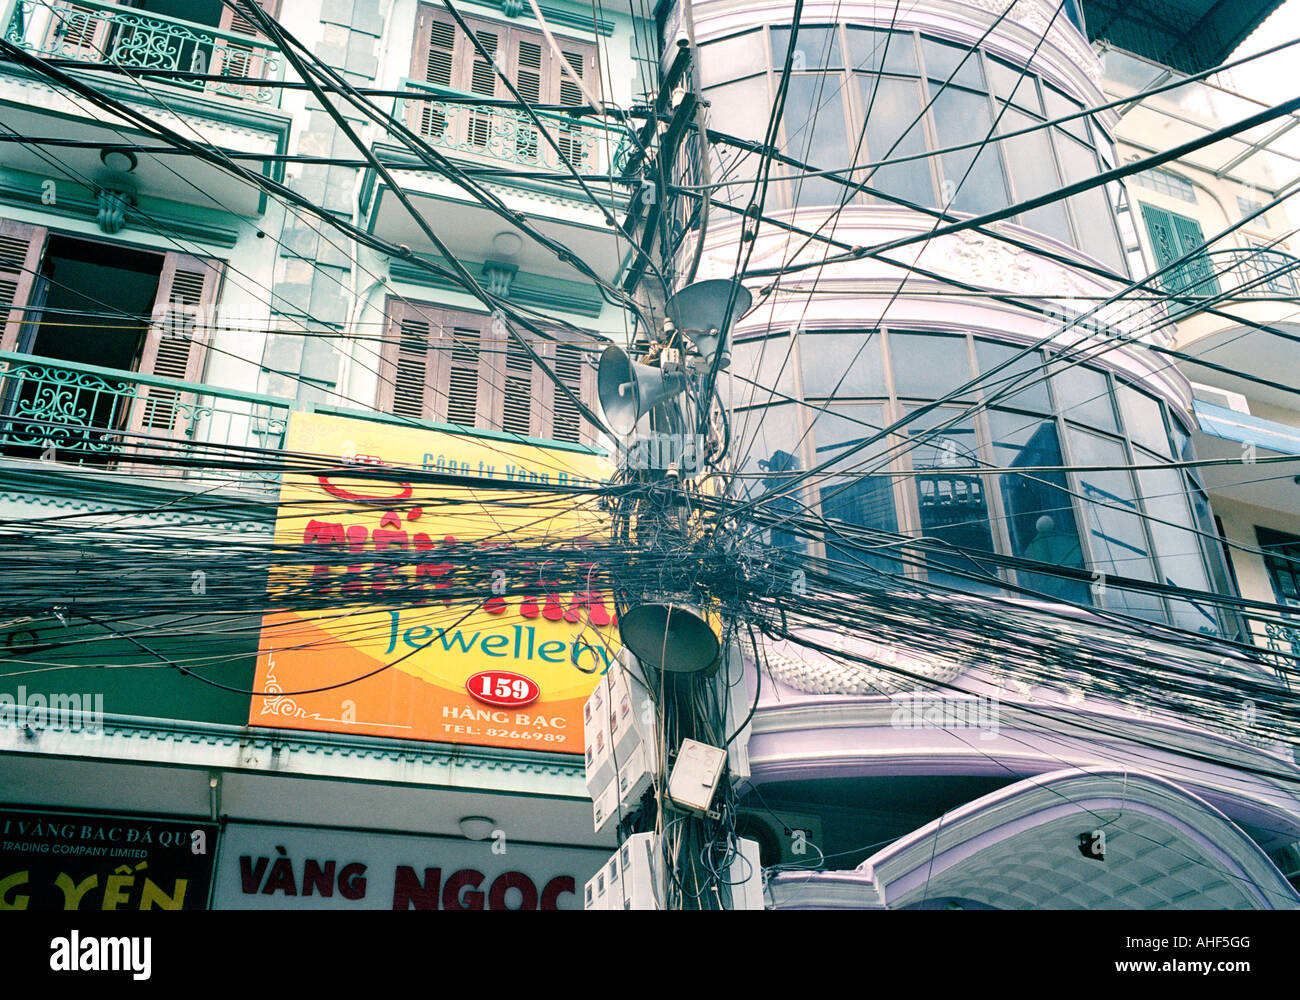 hight resolution of crazy telephone wiring in the old city of hanoi in vietnam in far east southeast asia telecom telecommunication street scene urban slum travel